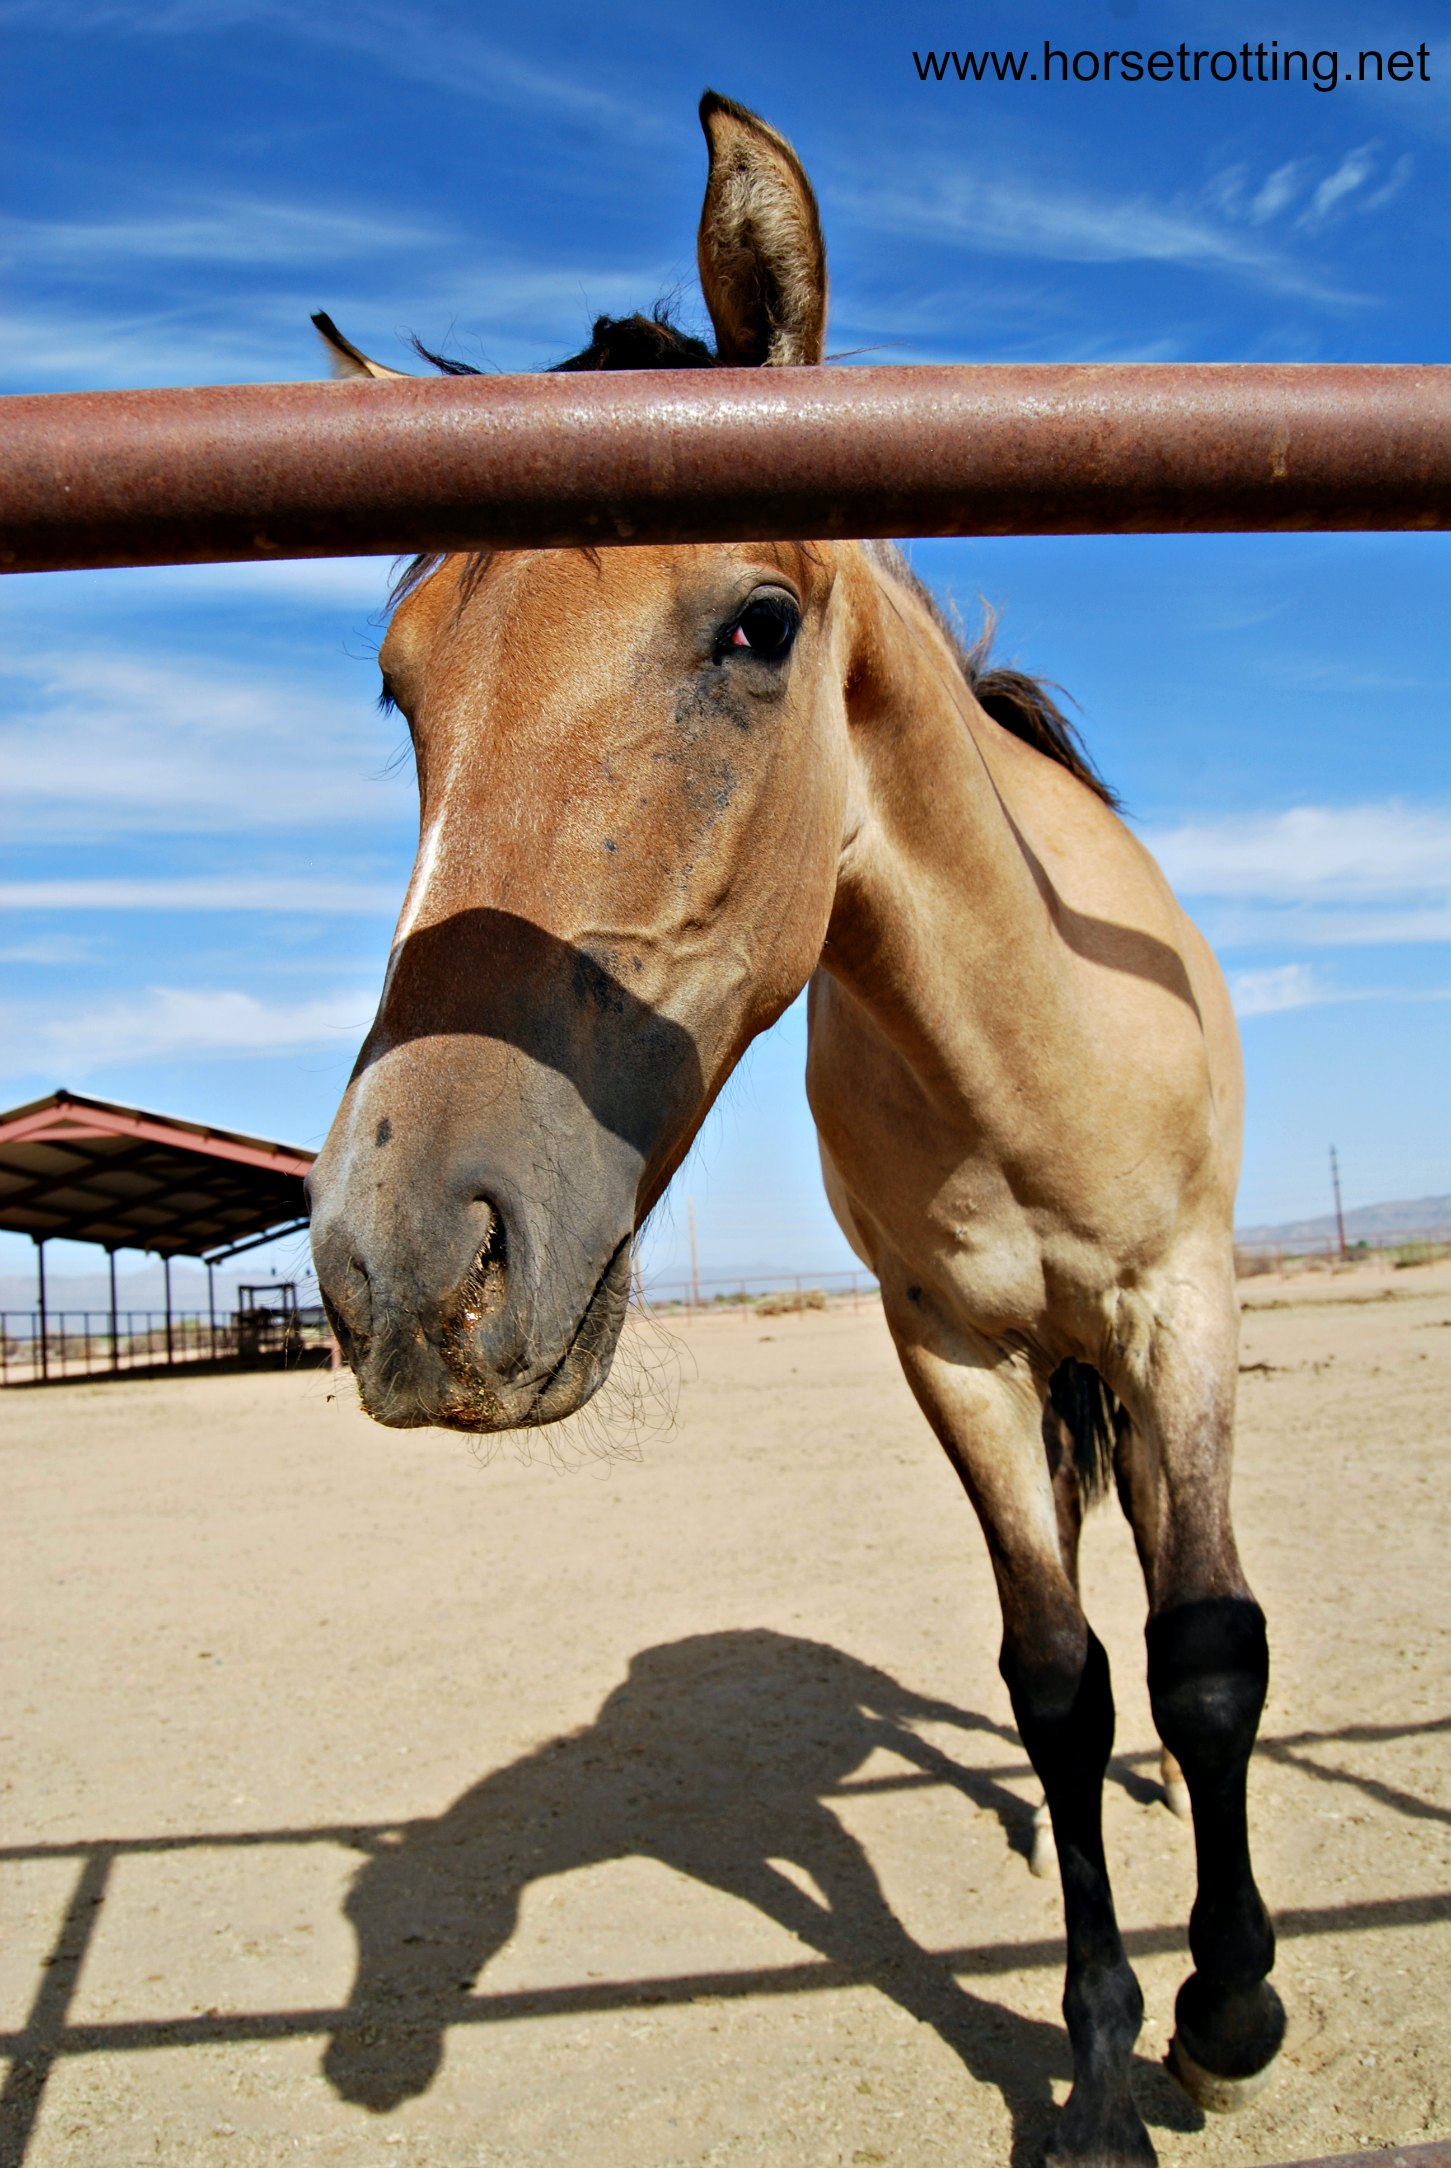 Foal at KOLI Equestrian Center, Arizona